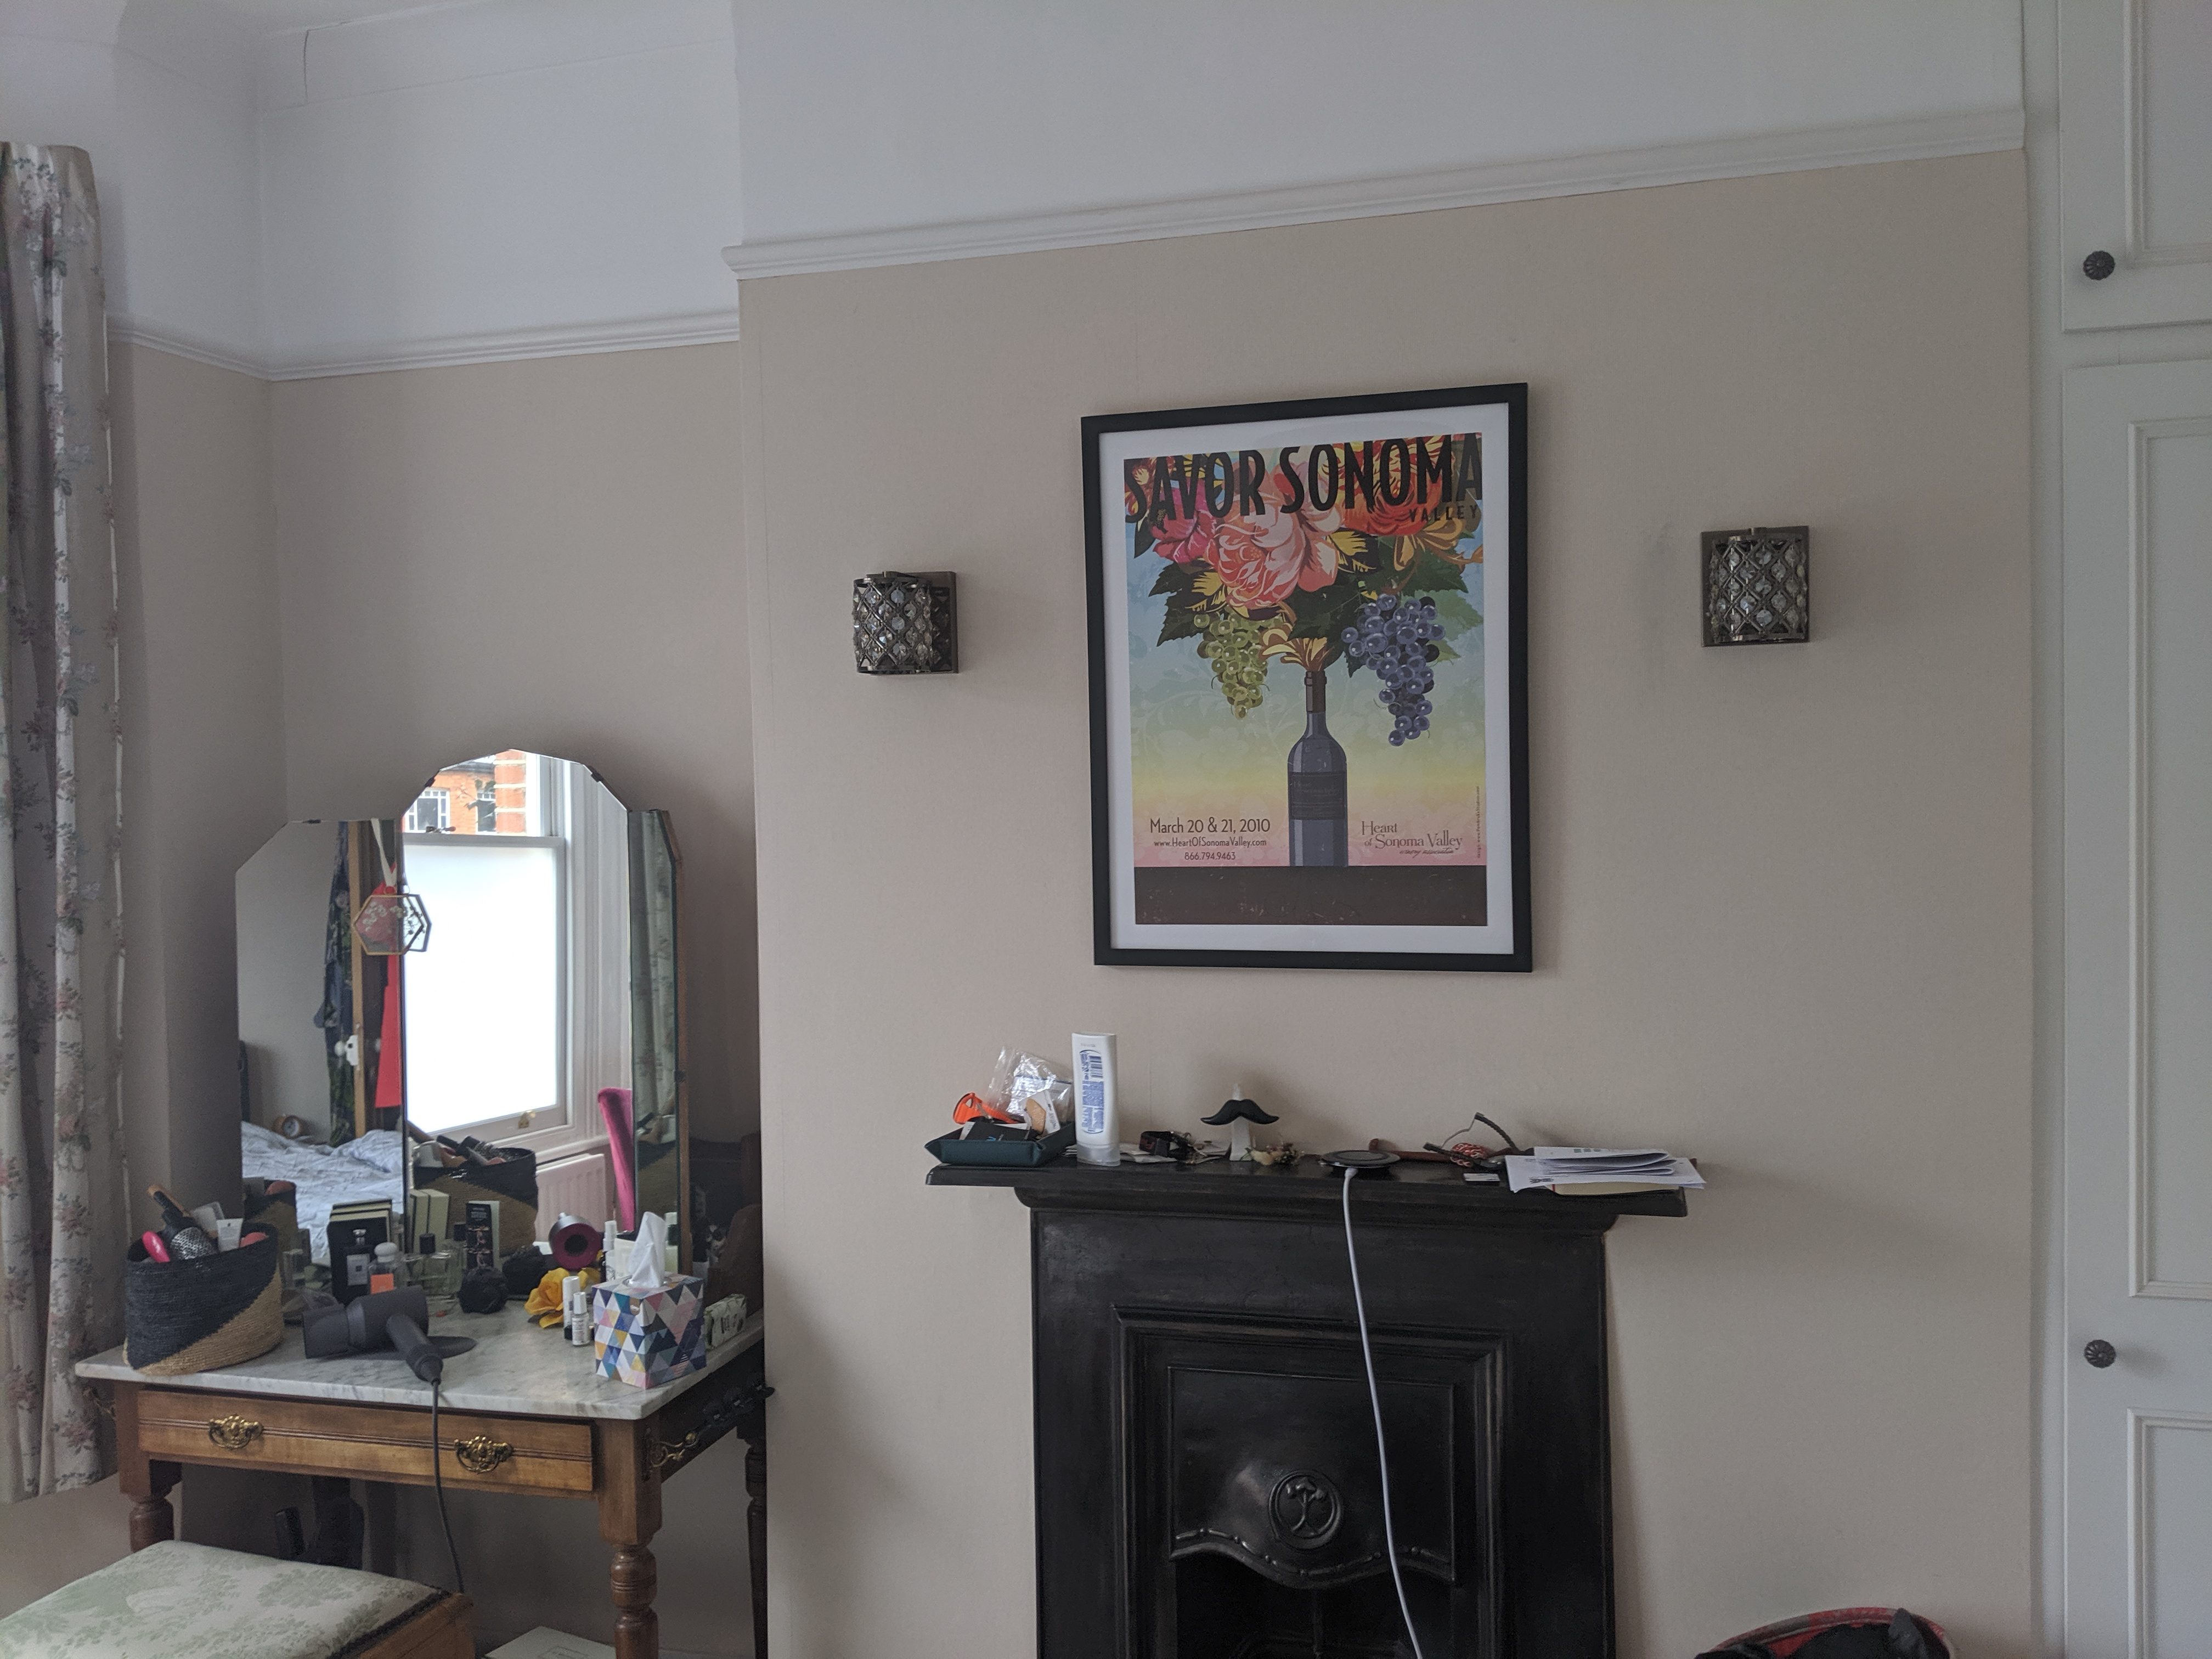 A photo of the room before, with the original fireplace and the old wall lights.